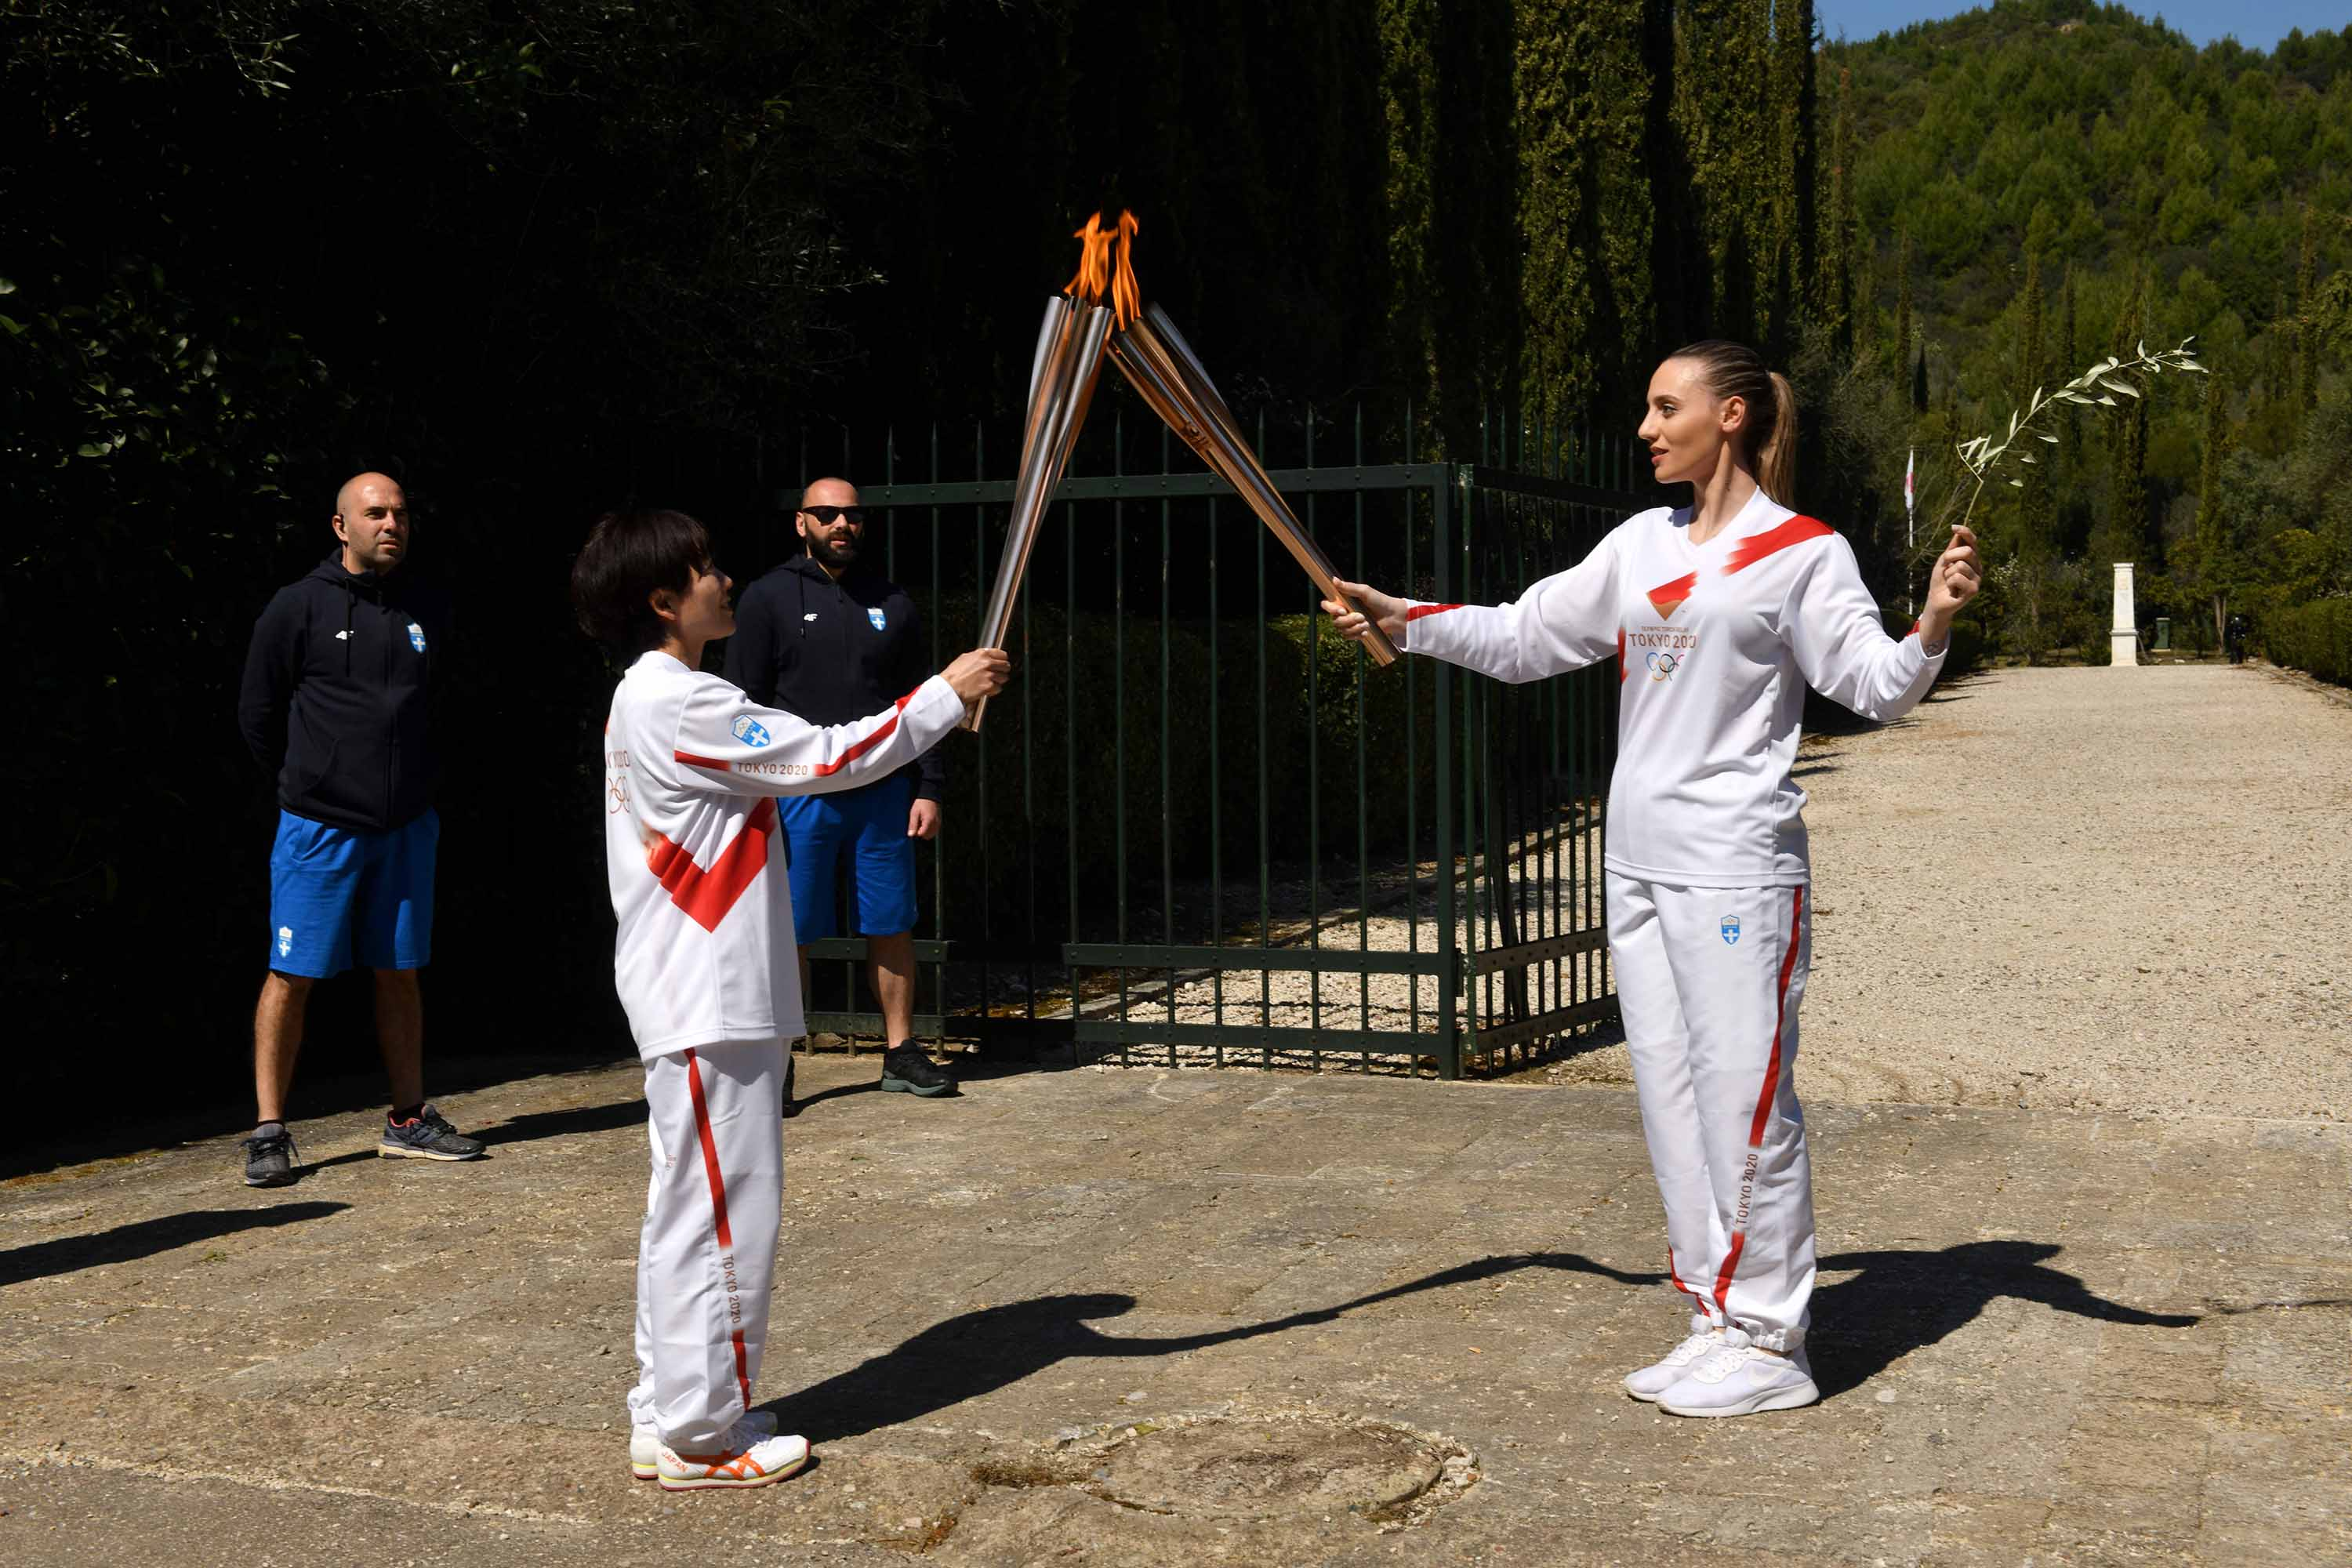 Torchbearer Anna Korakaki of Greece, right, passes the Olympic flame to Japan's Mizuki Noguchi during a lighting ceremony on March 12 in Olympia, Greece.